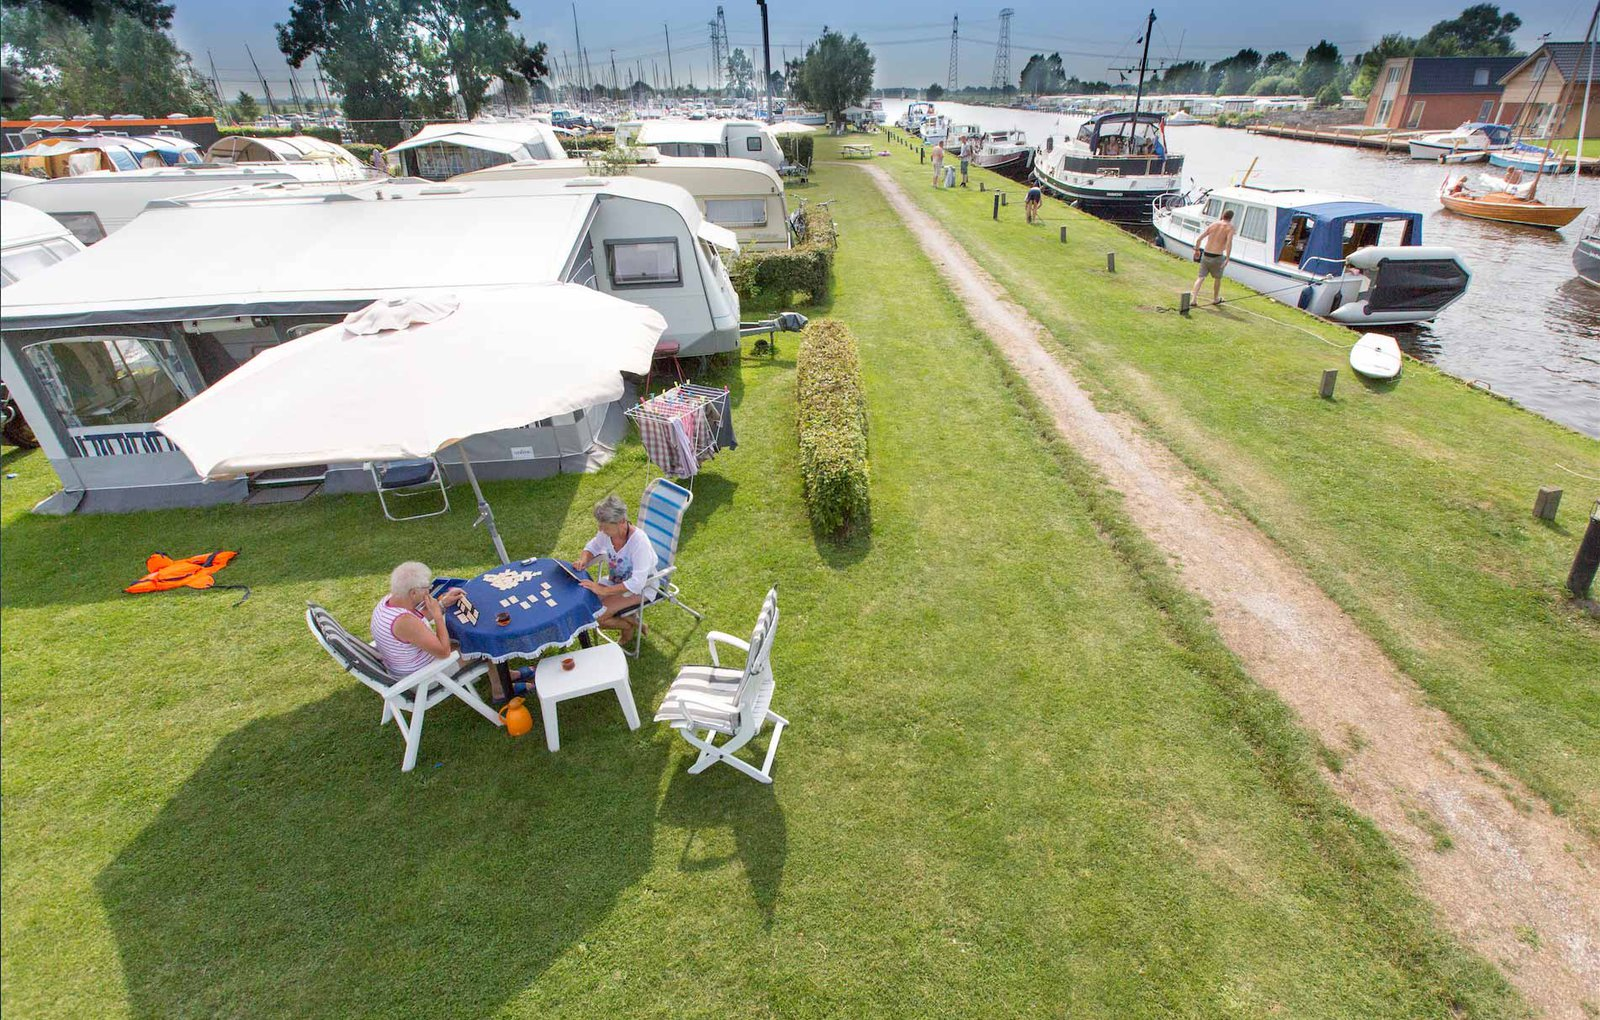 Camping Friesland is kamperen aan het water met caravan of tent